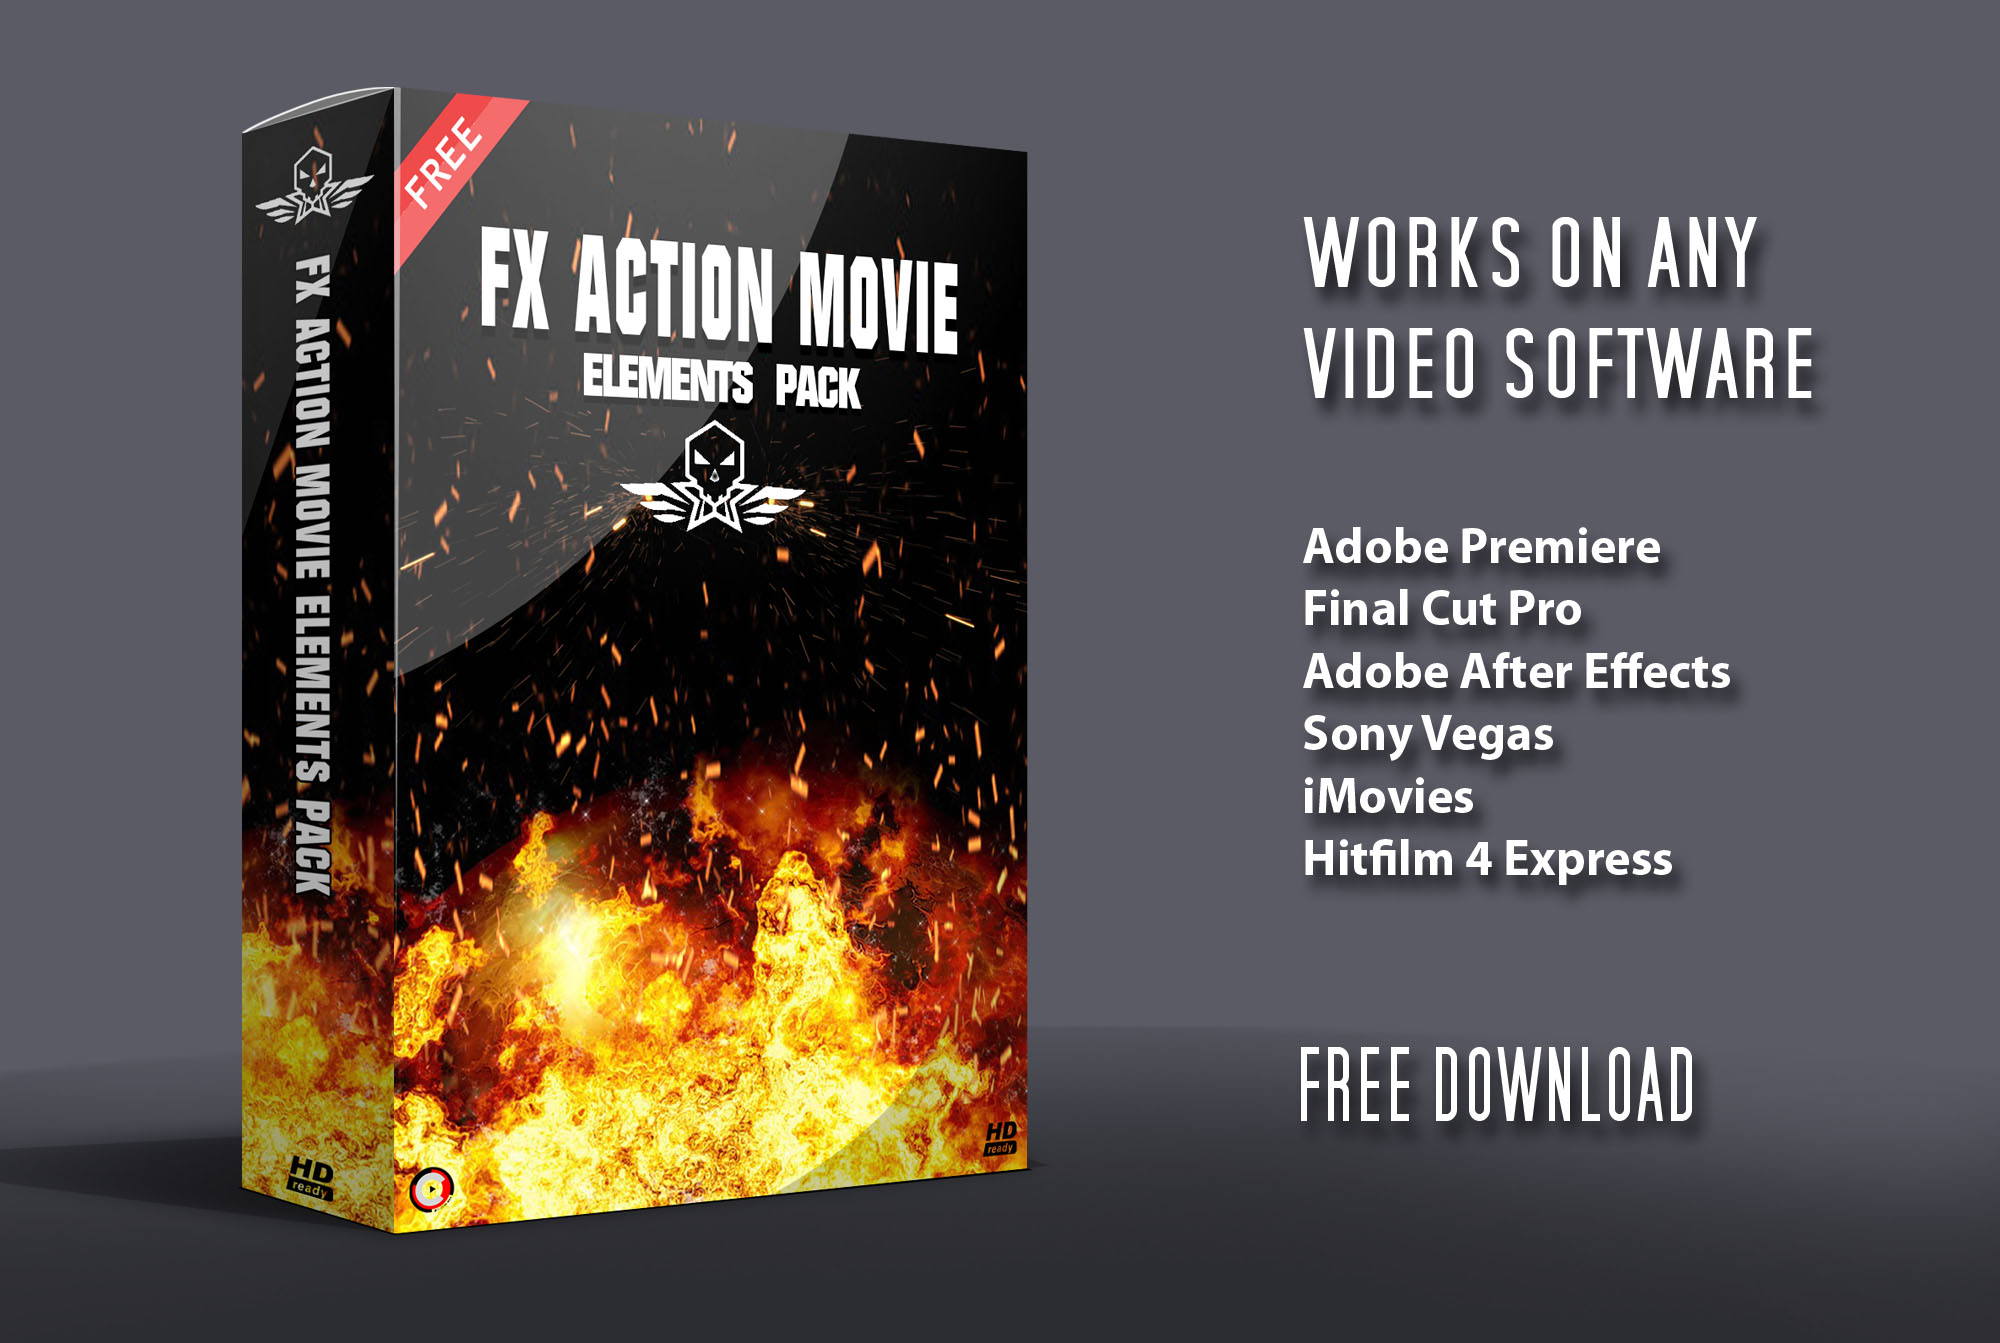 FX Action Movie Elements Pack